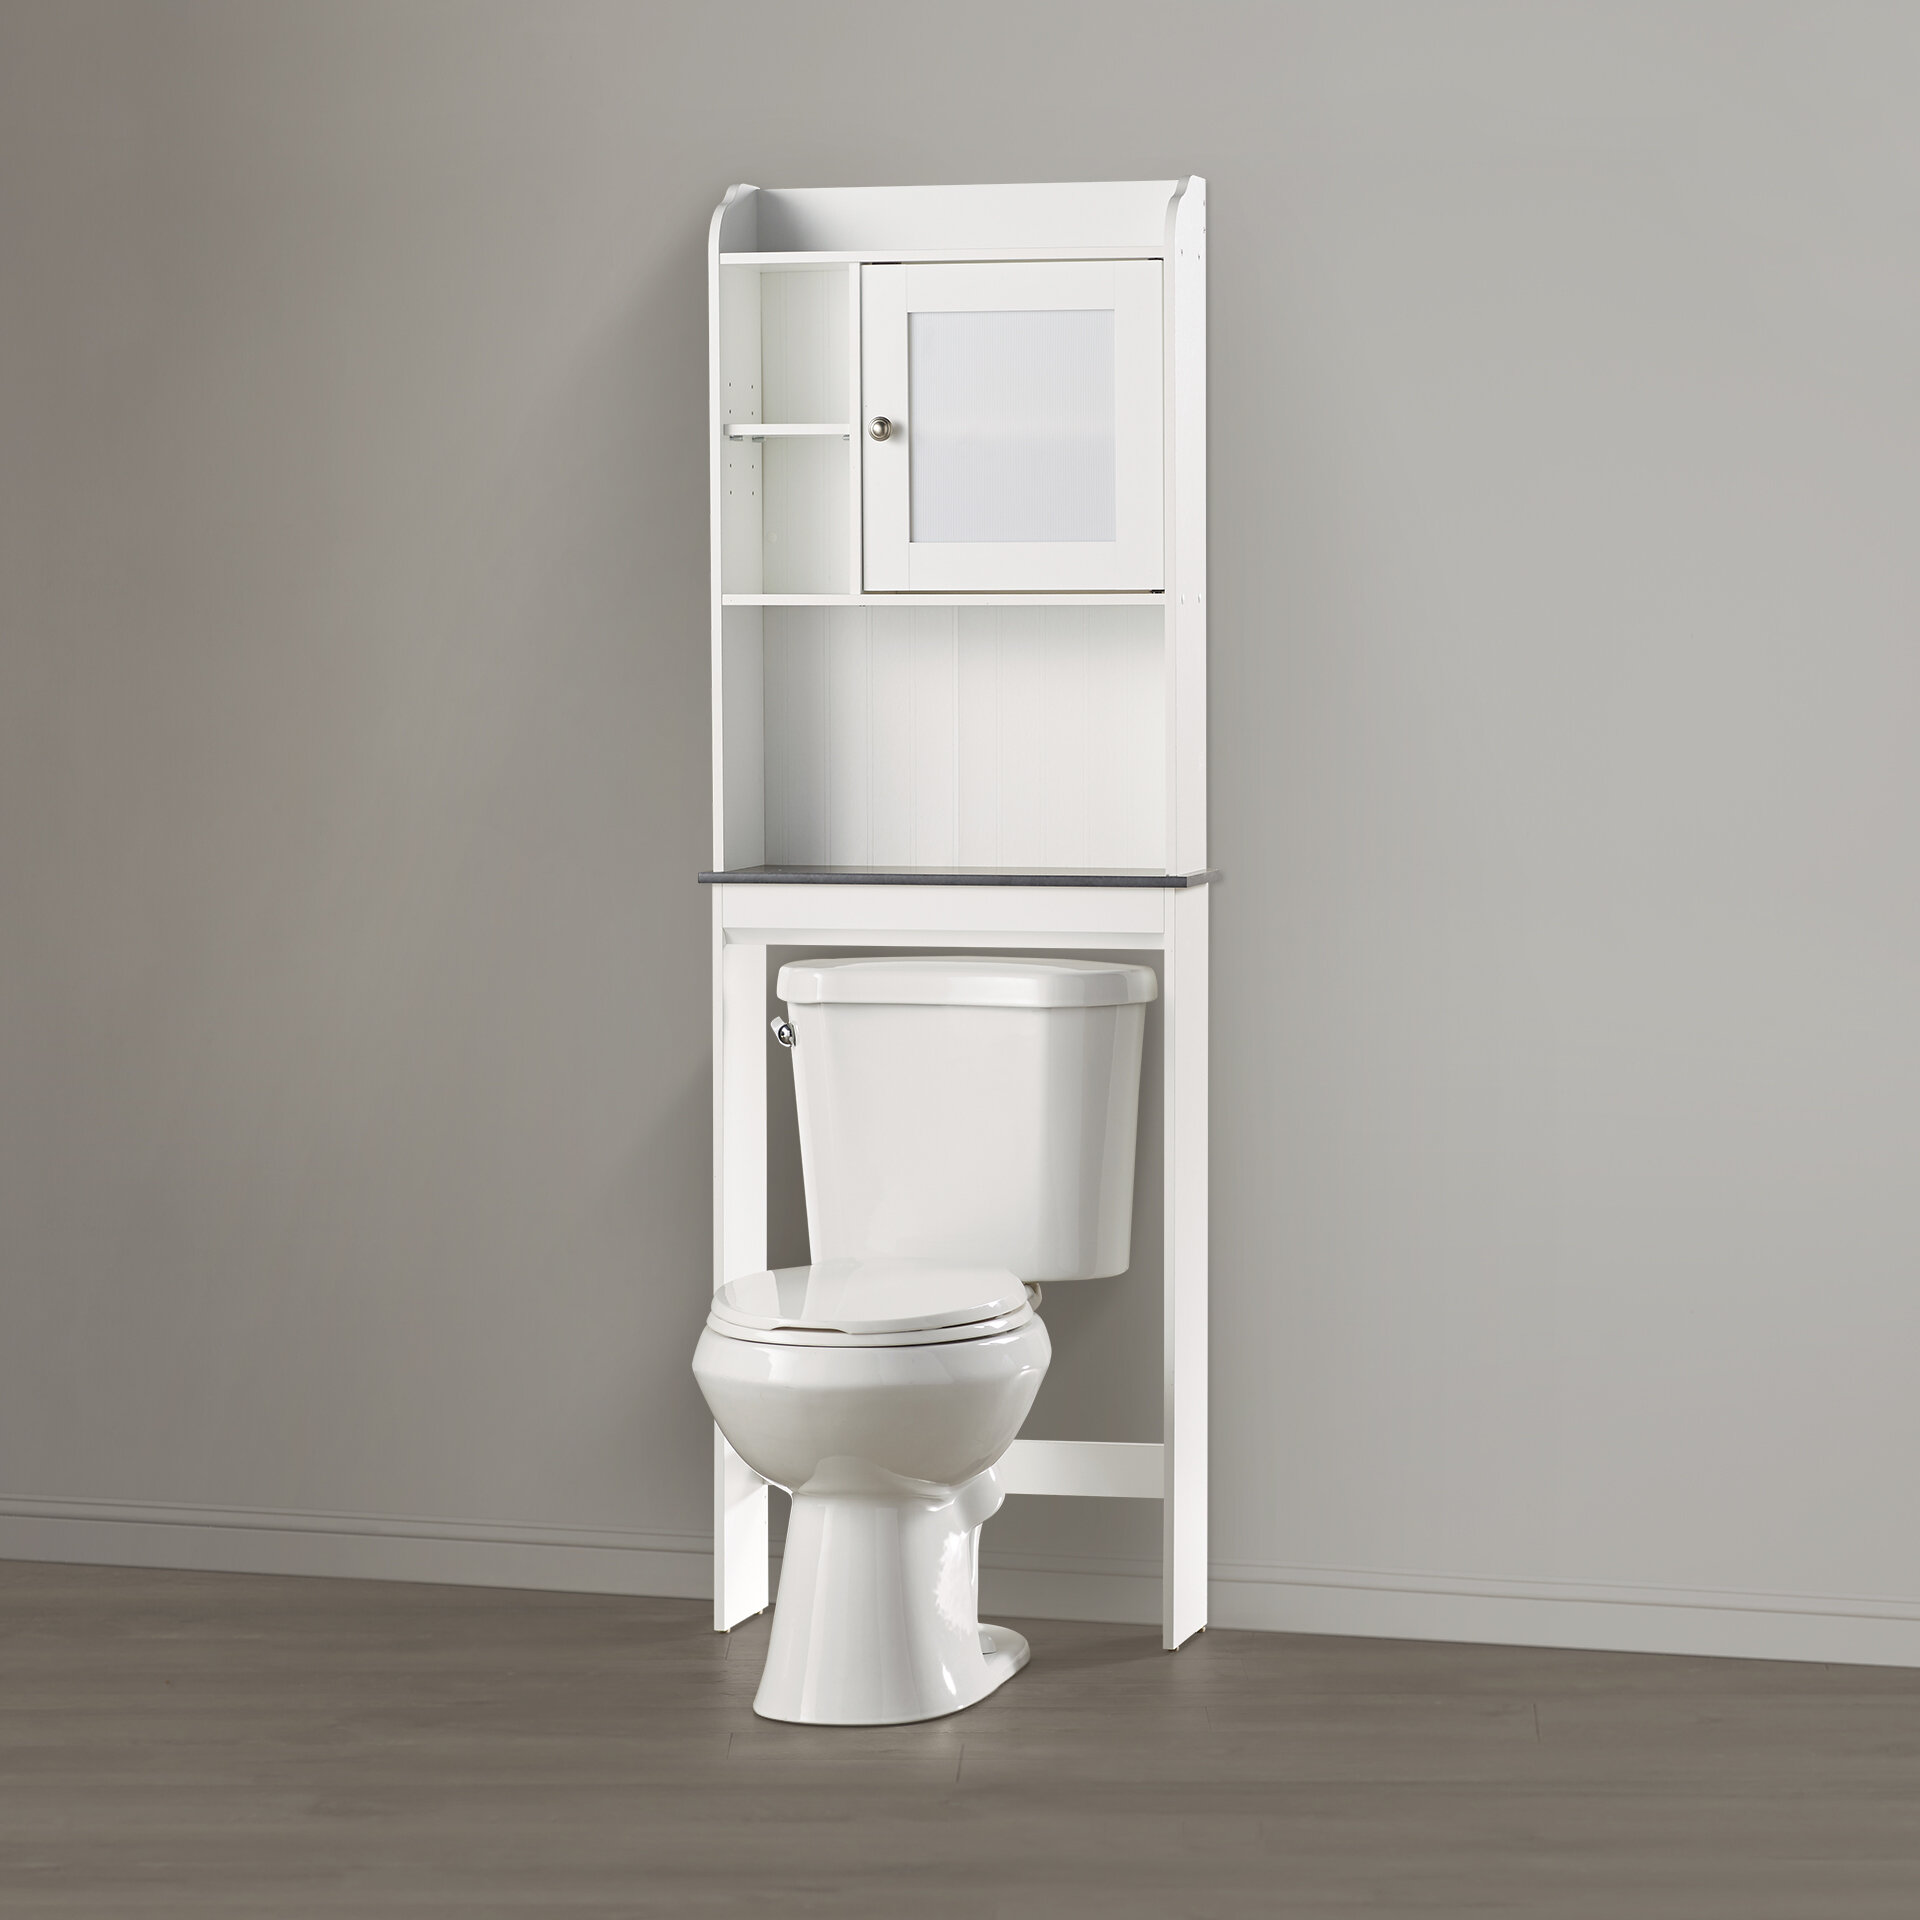 rear toilet elkinson floor dual piece flush white european two outlet